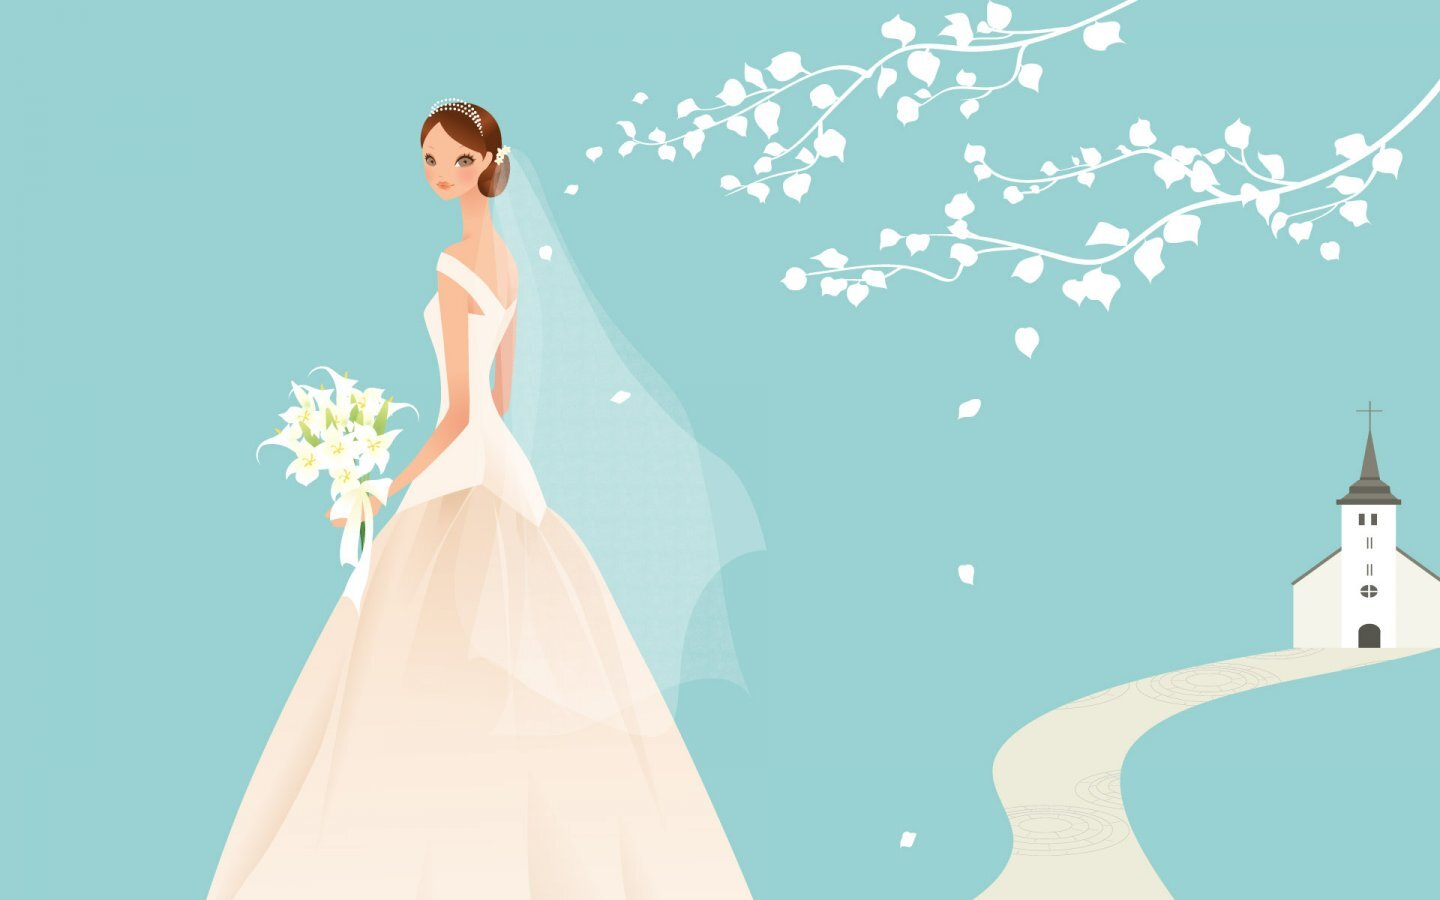 6815336-wedding-wallpaper.jpg